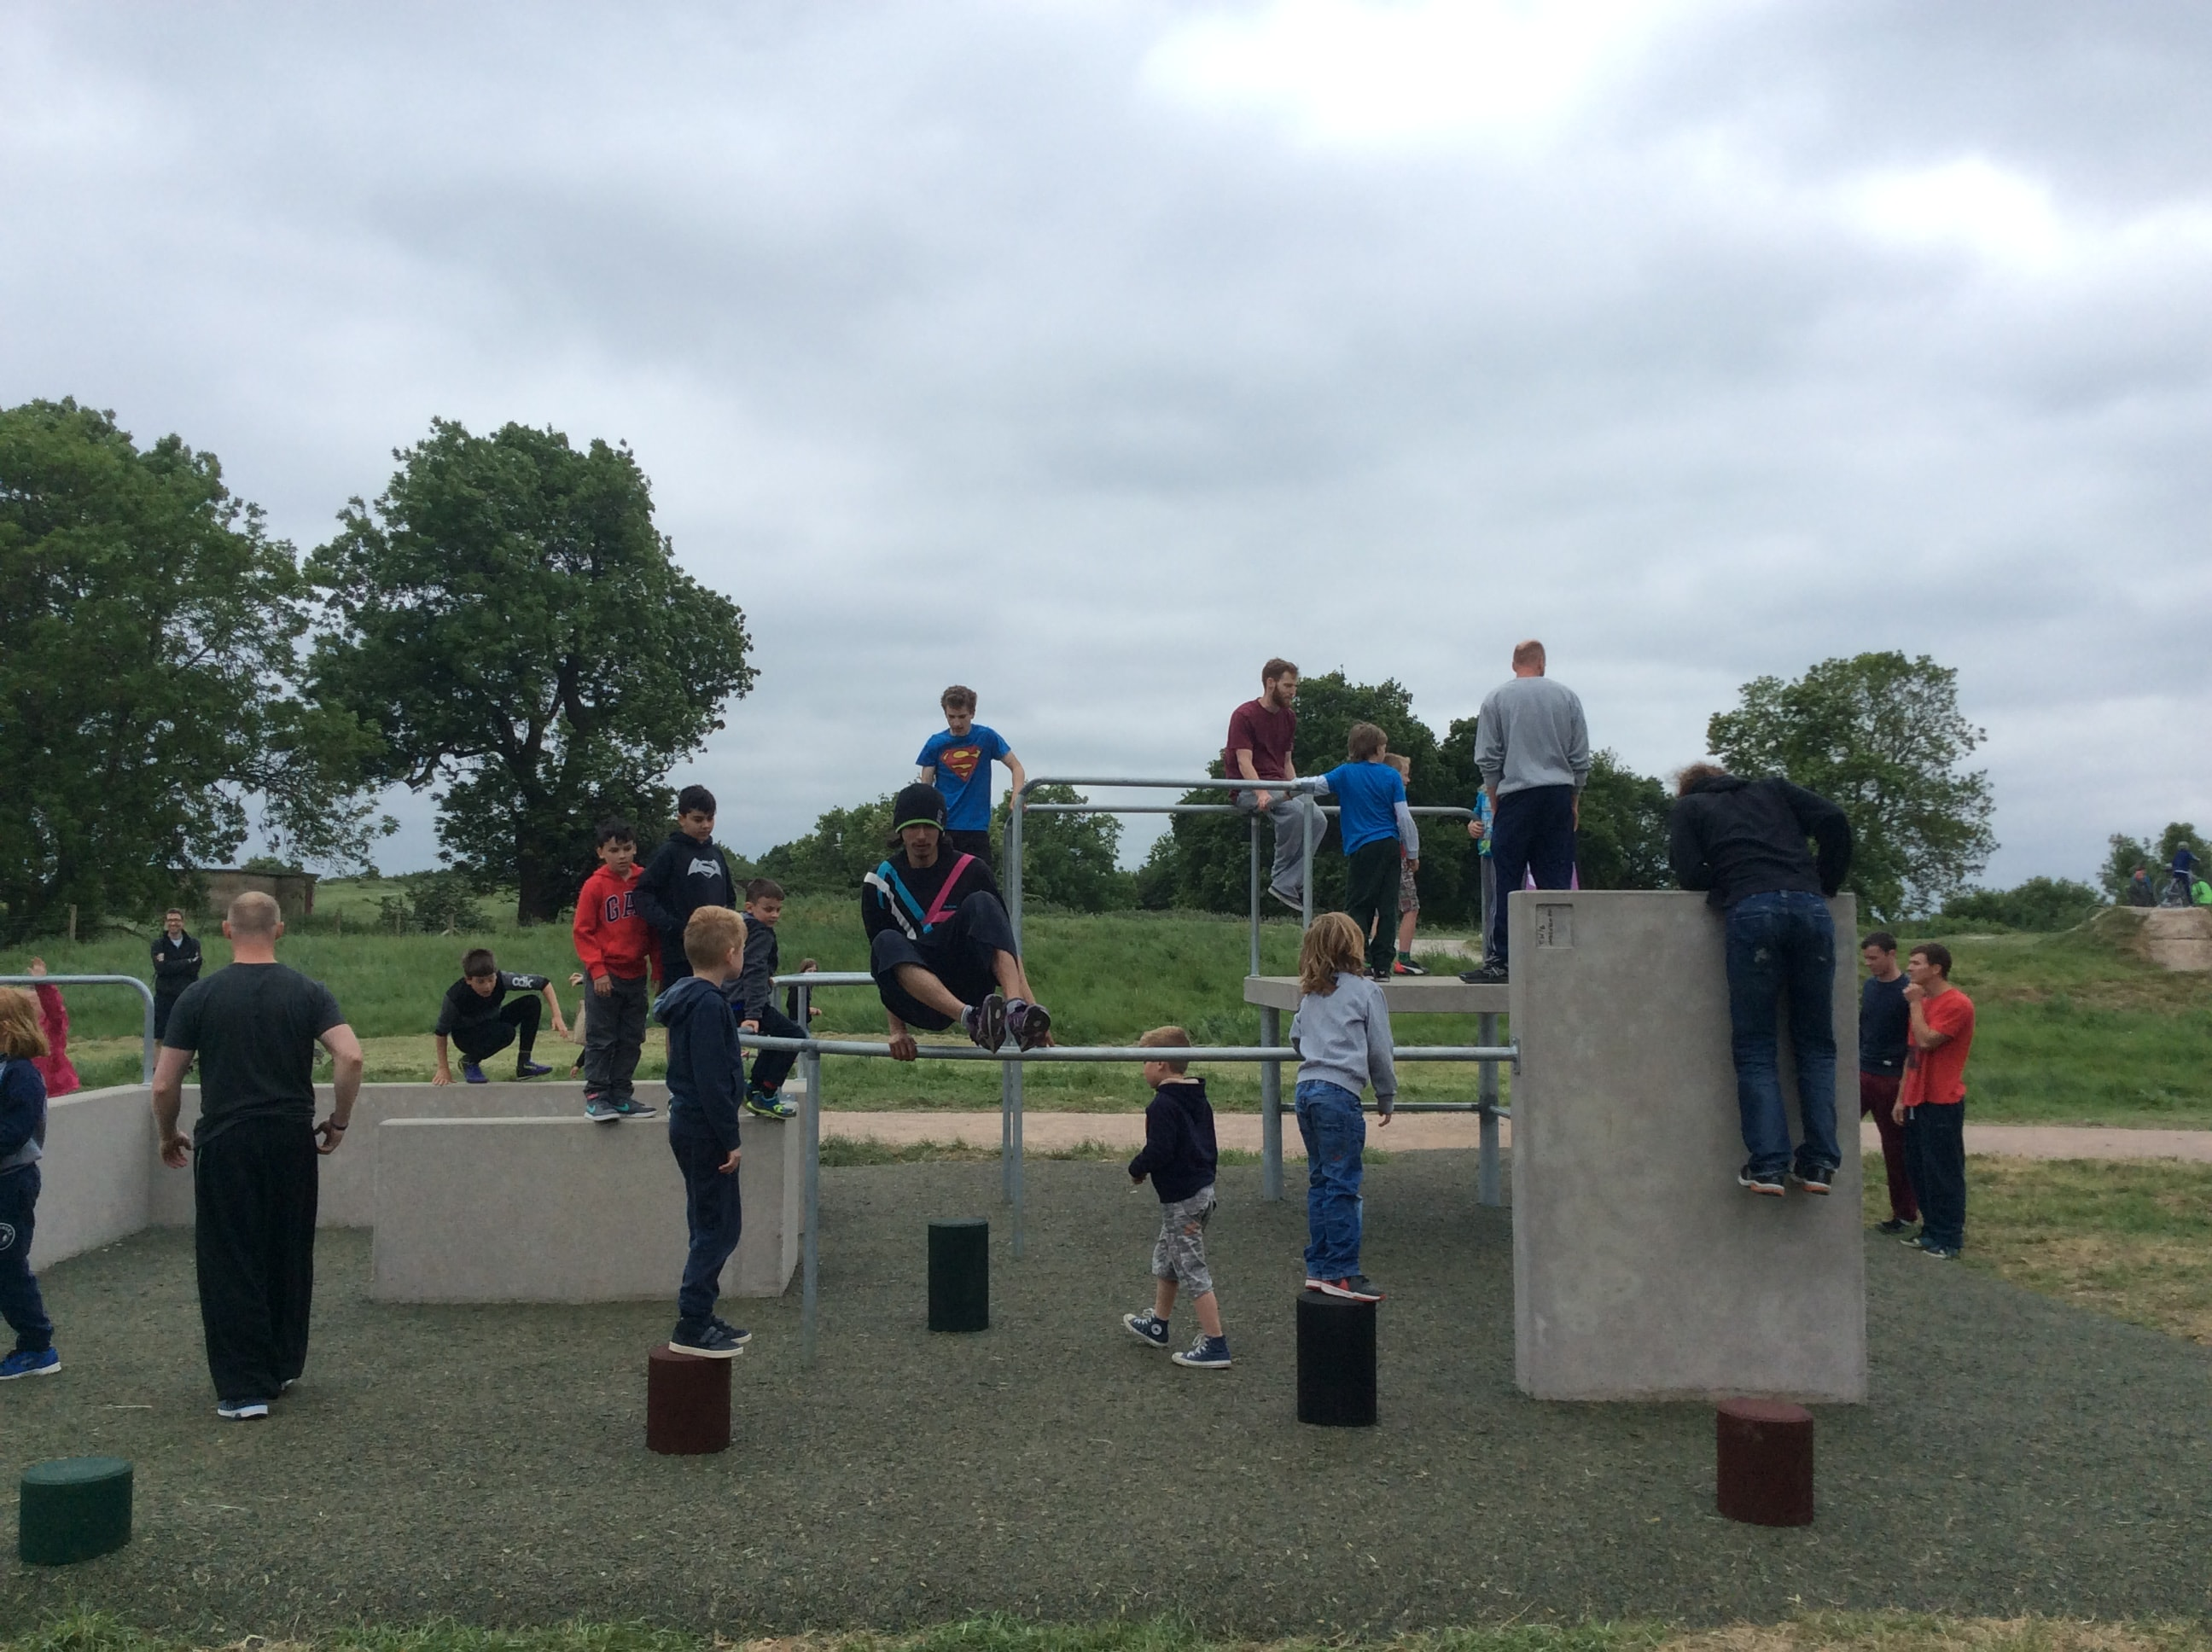 Children learn how to navigate the parkour obstacles at Hadleigh Park